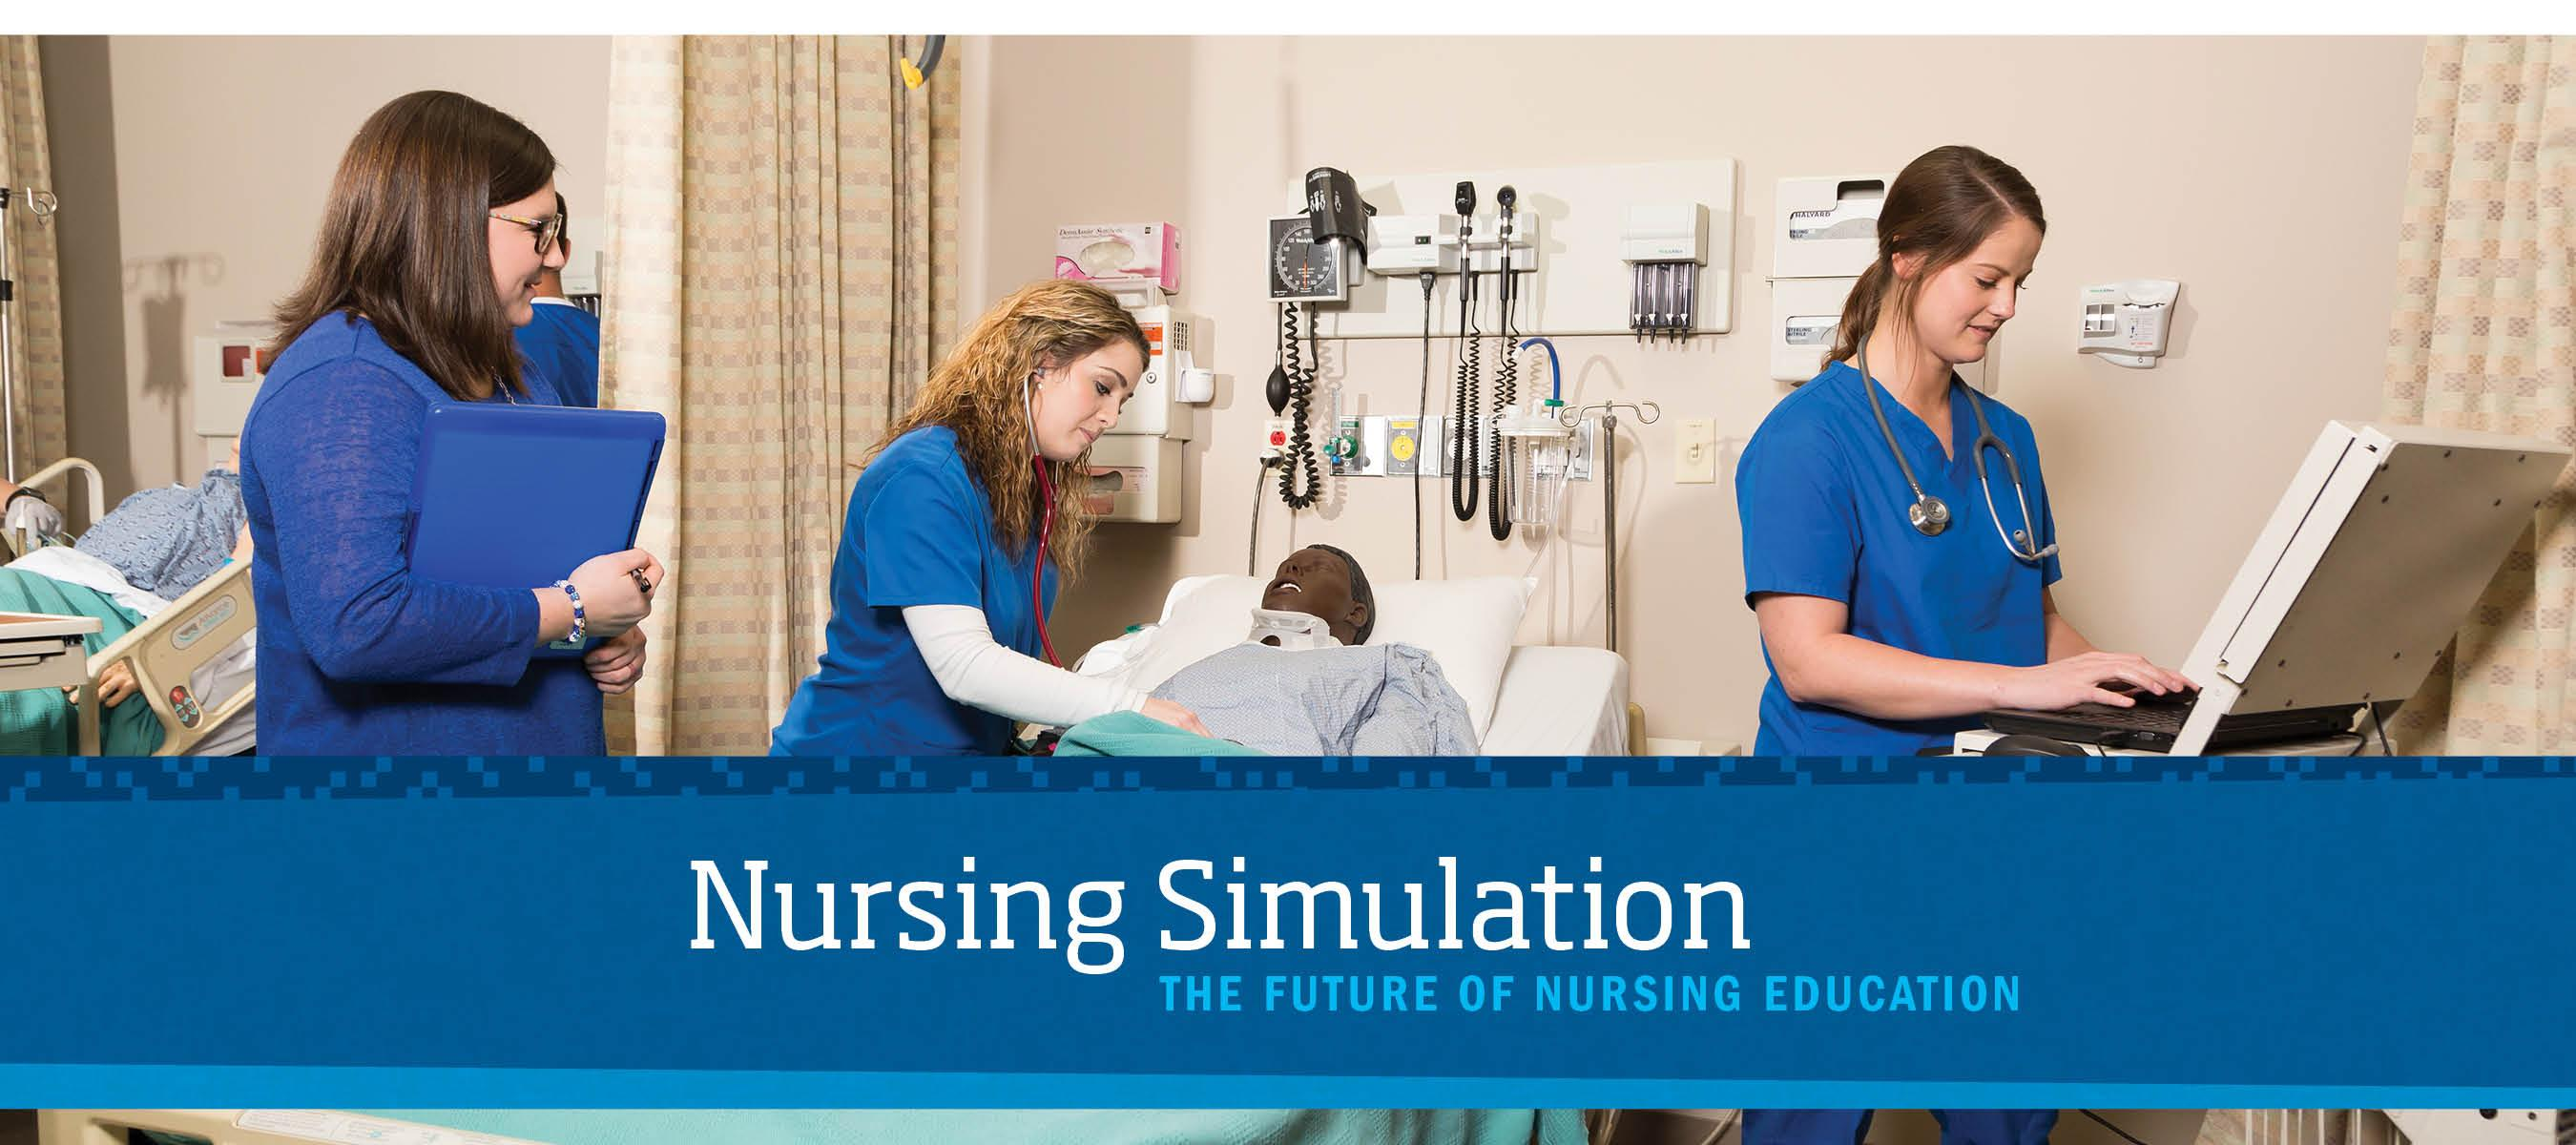 Kramer School of Nursing Simulation Center